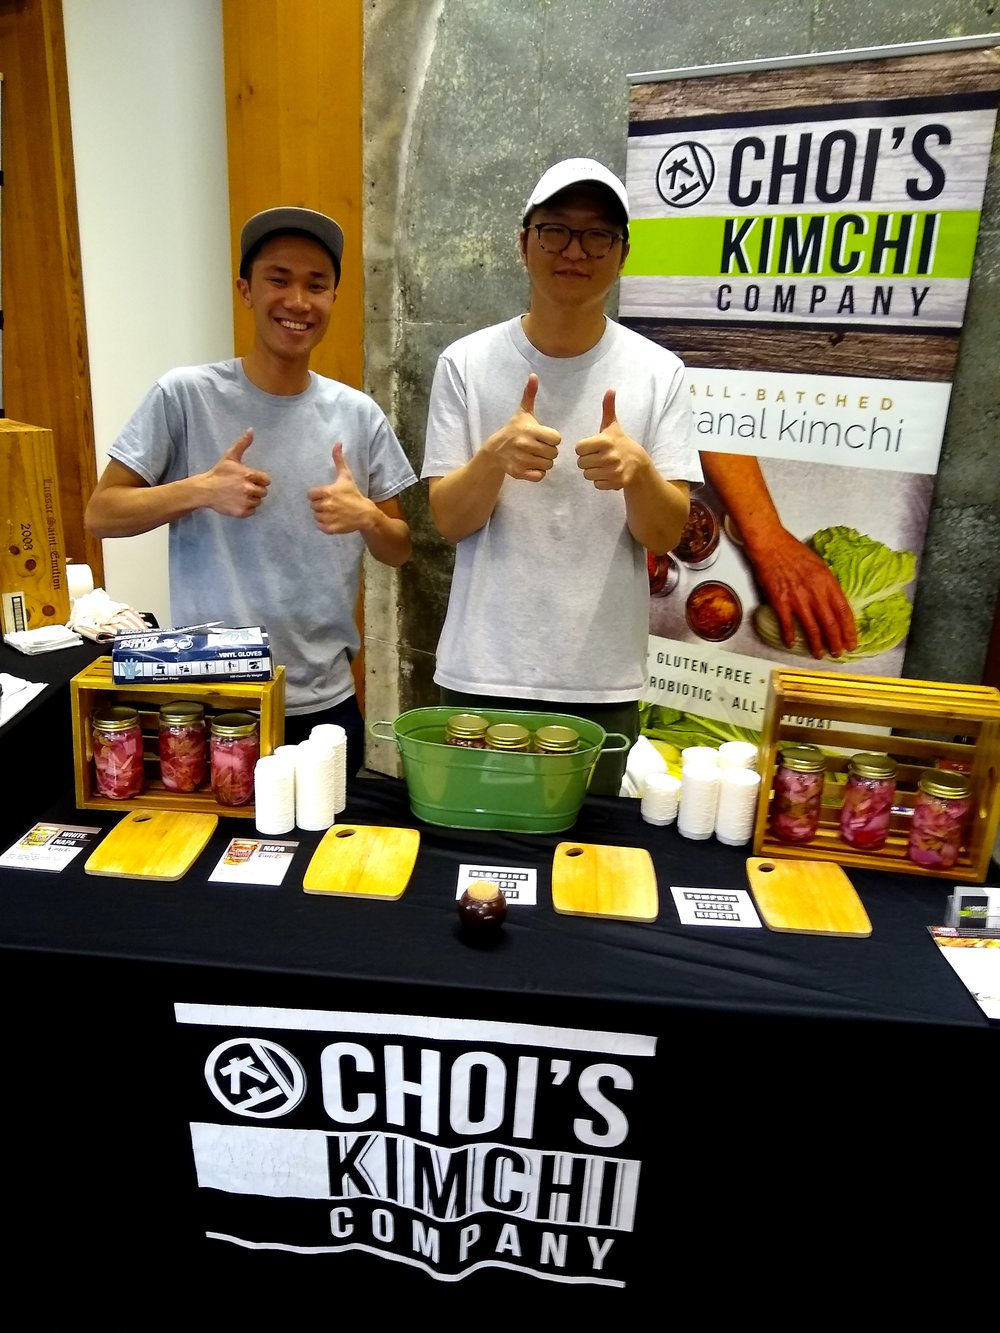 Every year before we open the festival doors I like to try to get as many exhibitor photos as possible. I didn't manage to get as many as I usually do this year — running around — but I got this cute one of Choi's Kimchi!